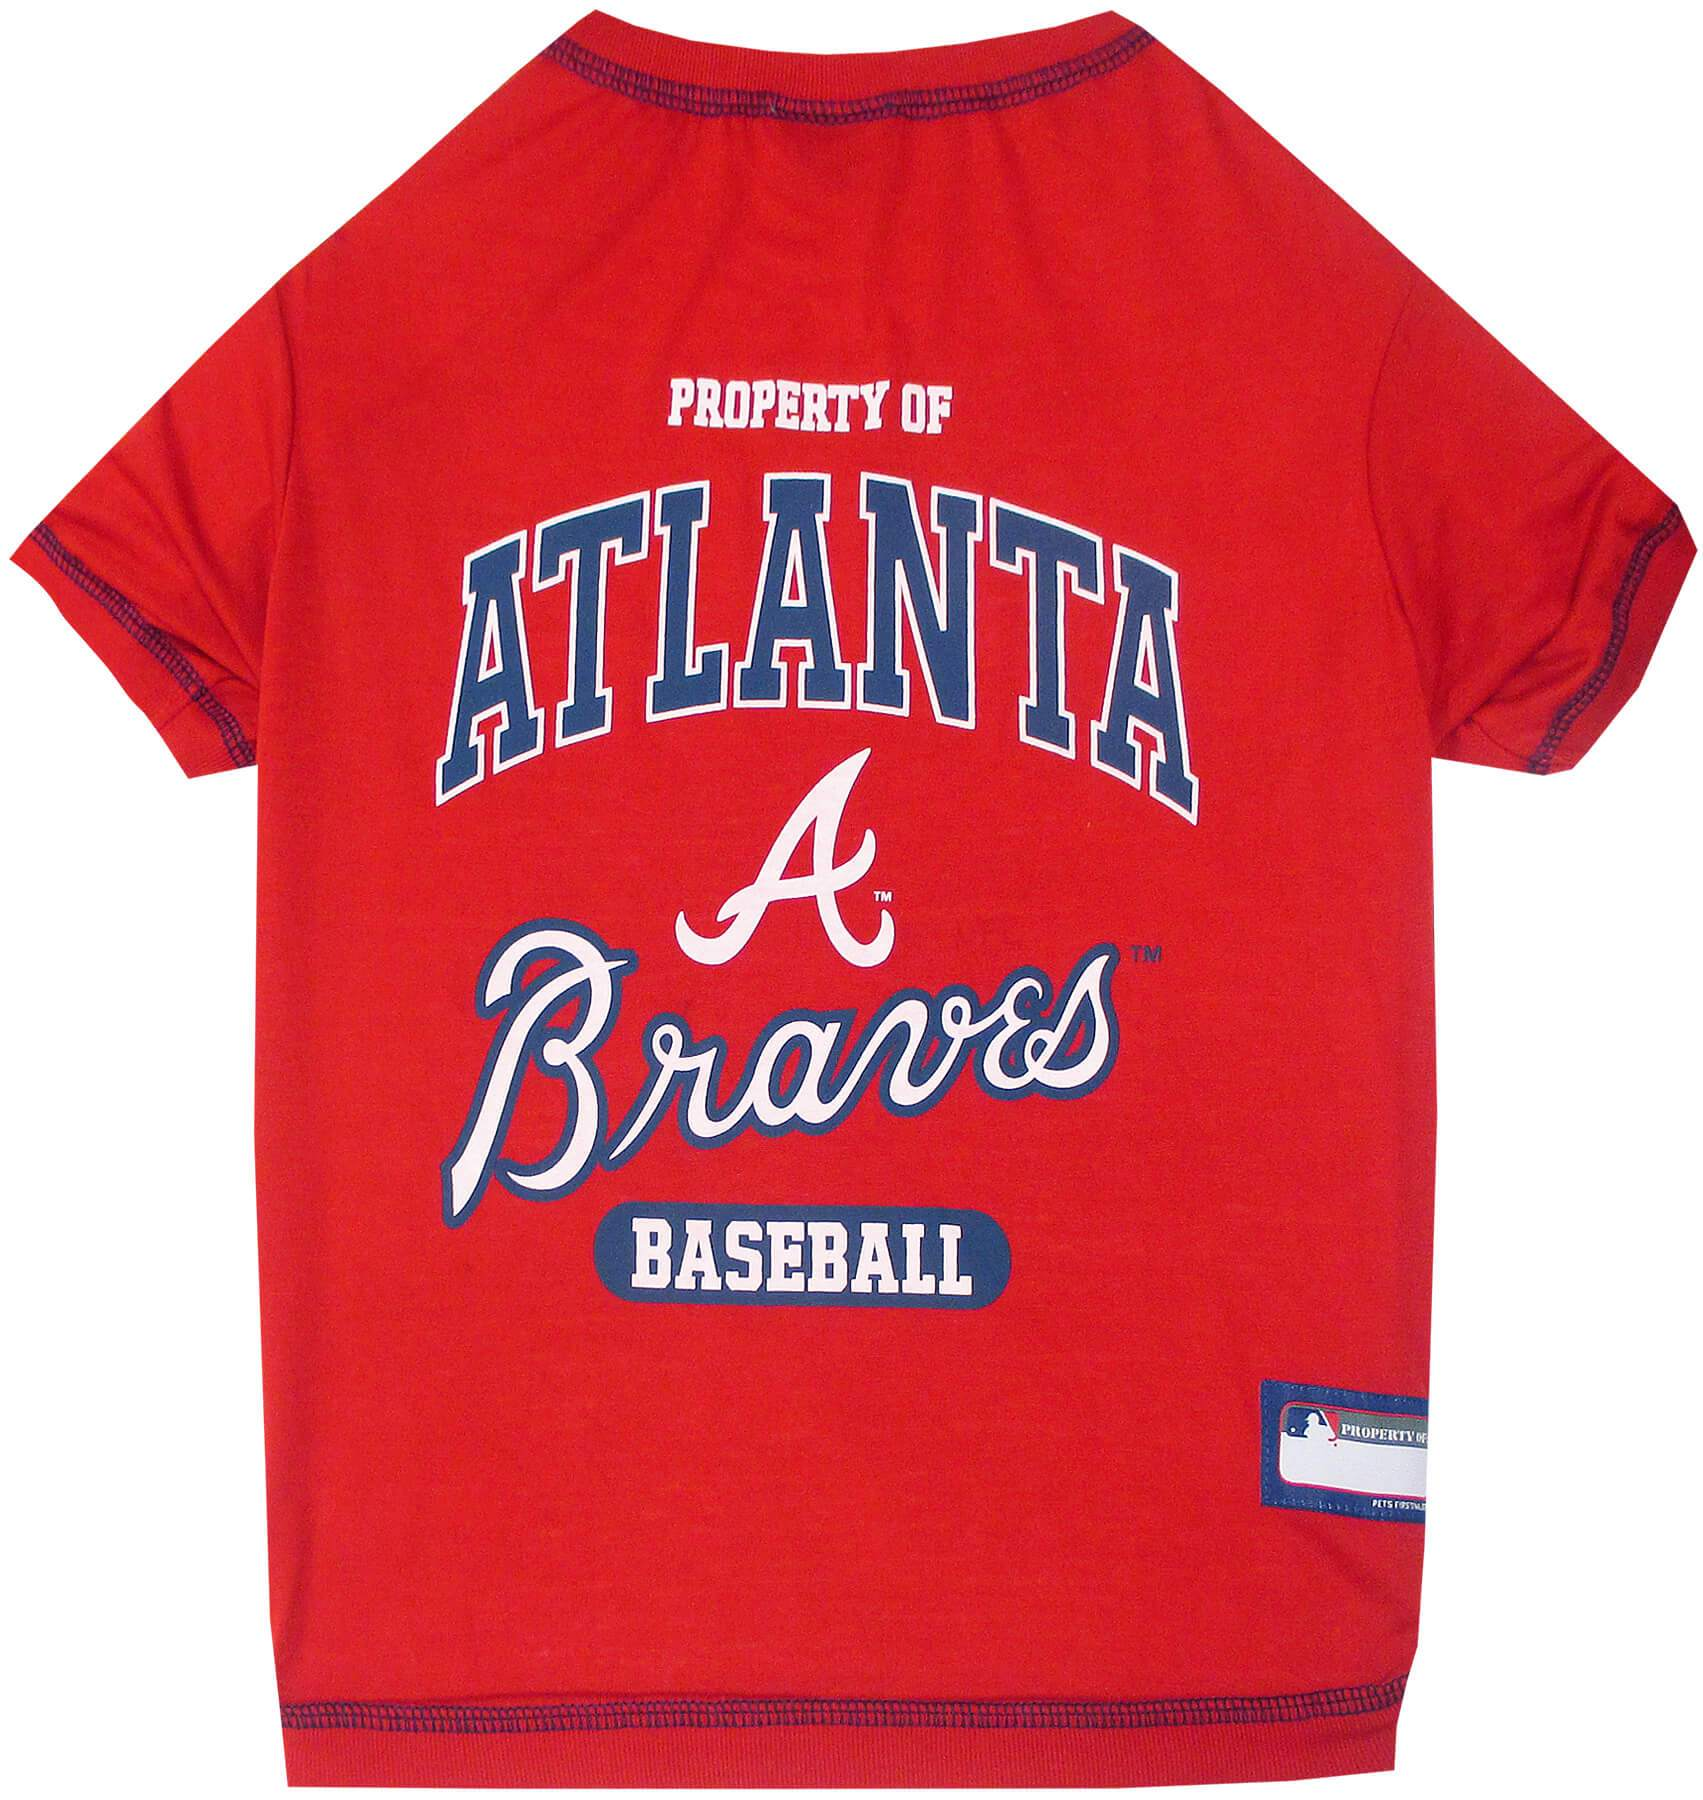 Atlanta Braves Dog Shirt - Jersey Champs